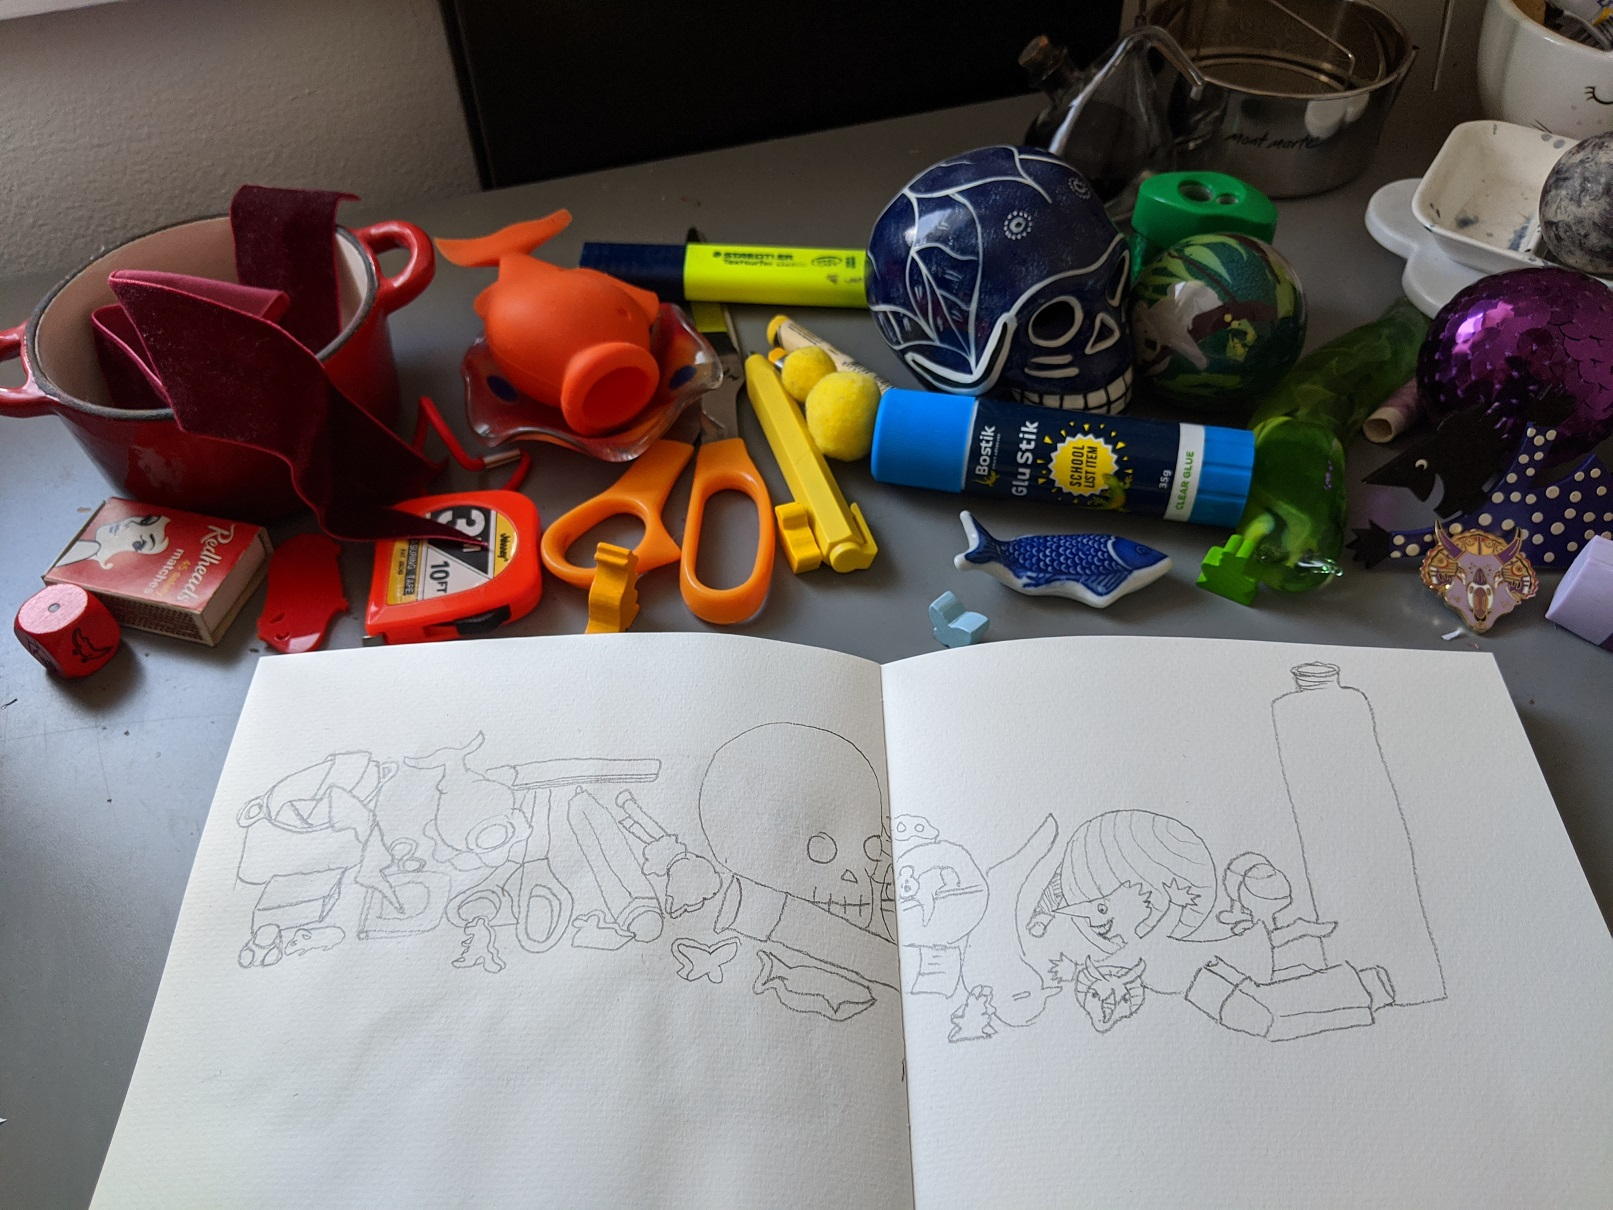 photograph of a collection of miscellaneous household objects with a sketch of the in the foreground